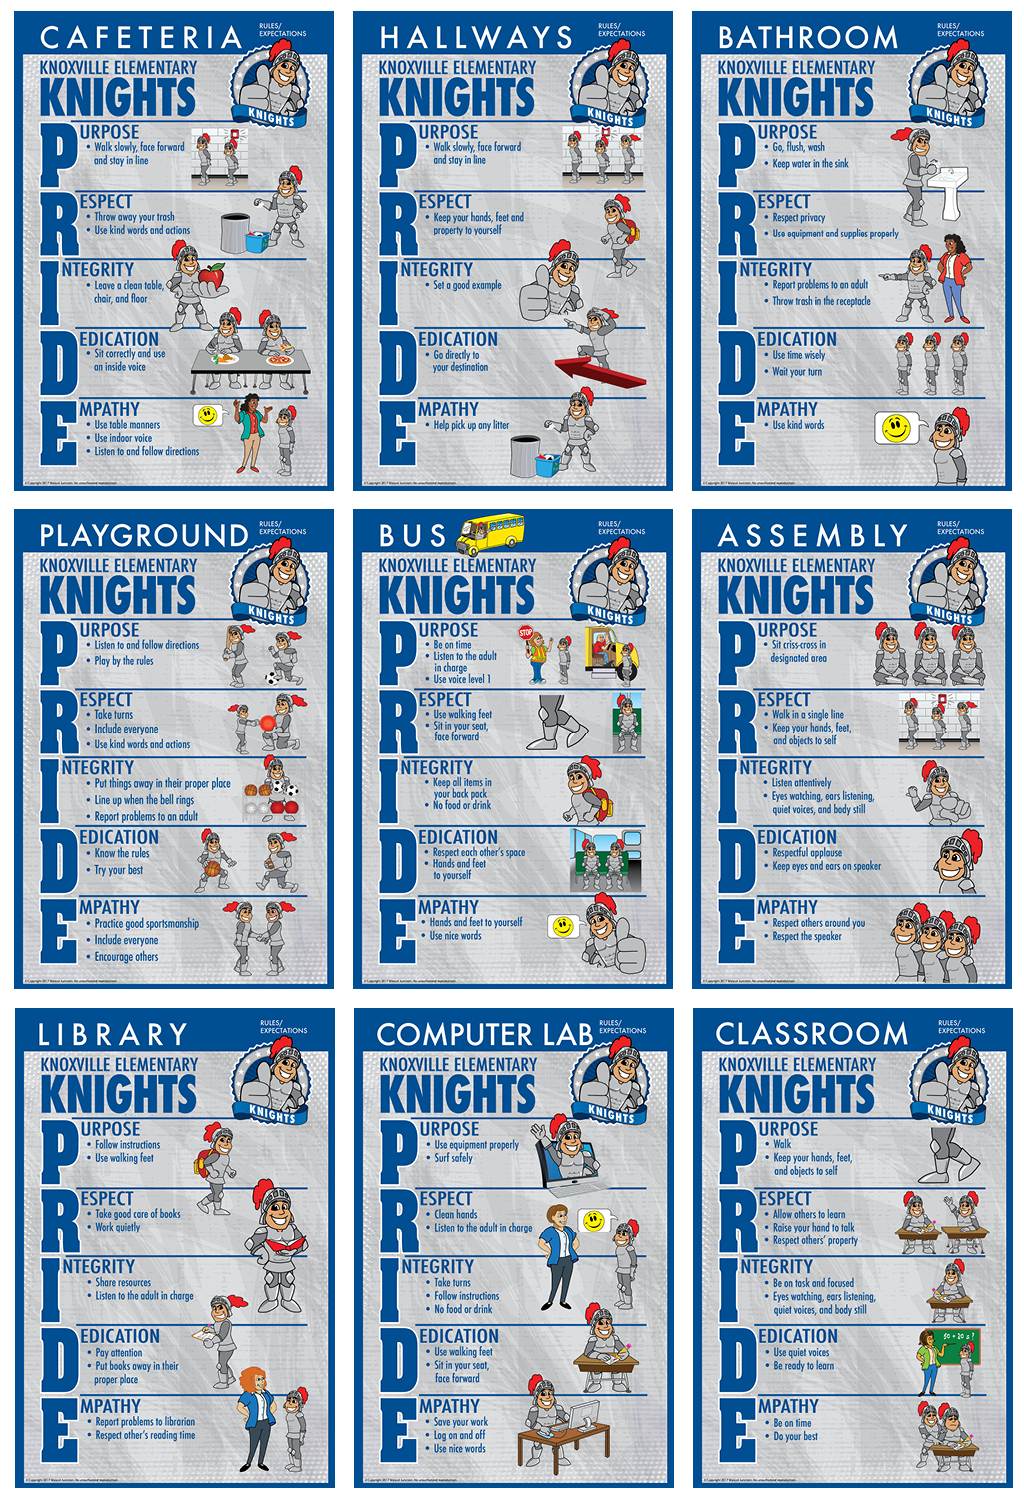 Rules Poster Knight 1